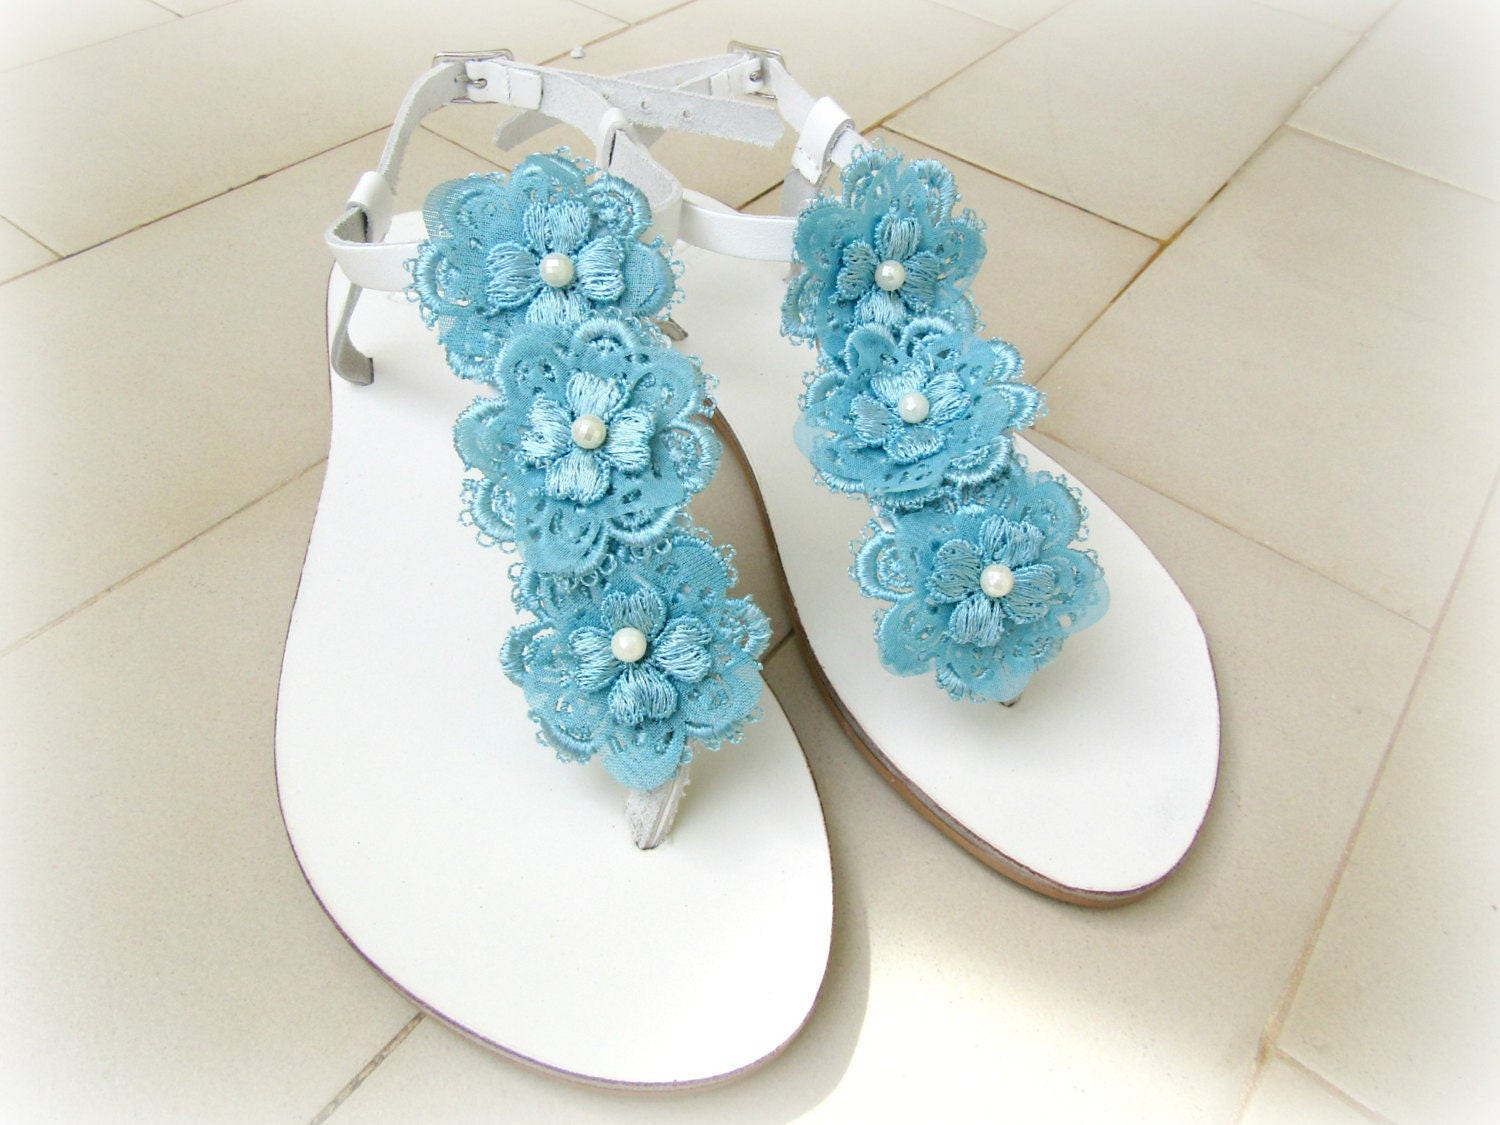 bf7794190 Wedding sandals -White sandals with Blue lace flowers - Something blue -  Bridal party - Greek leather sandals - Beach wedding - Summer shoes